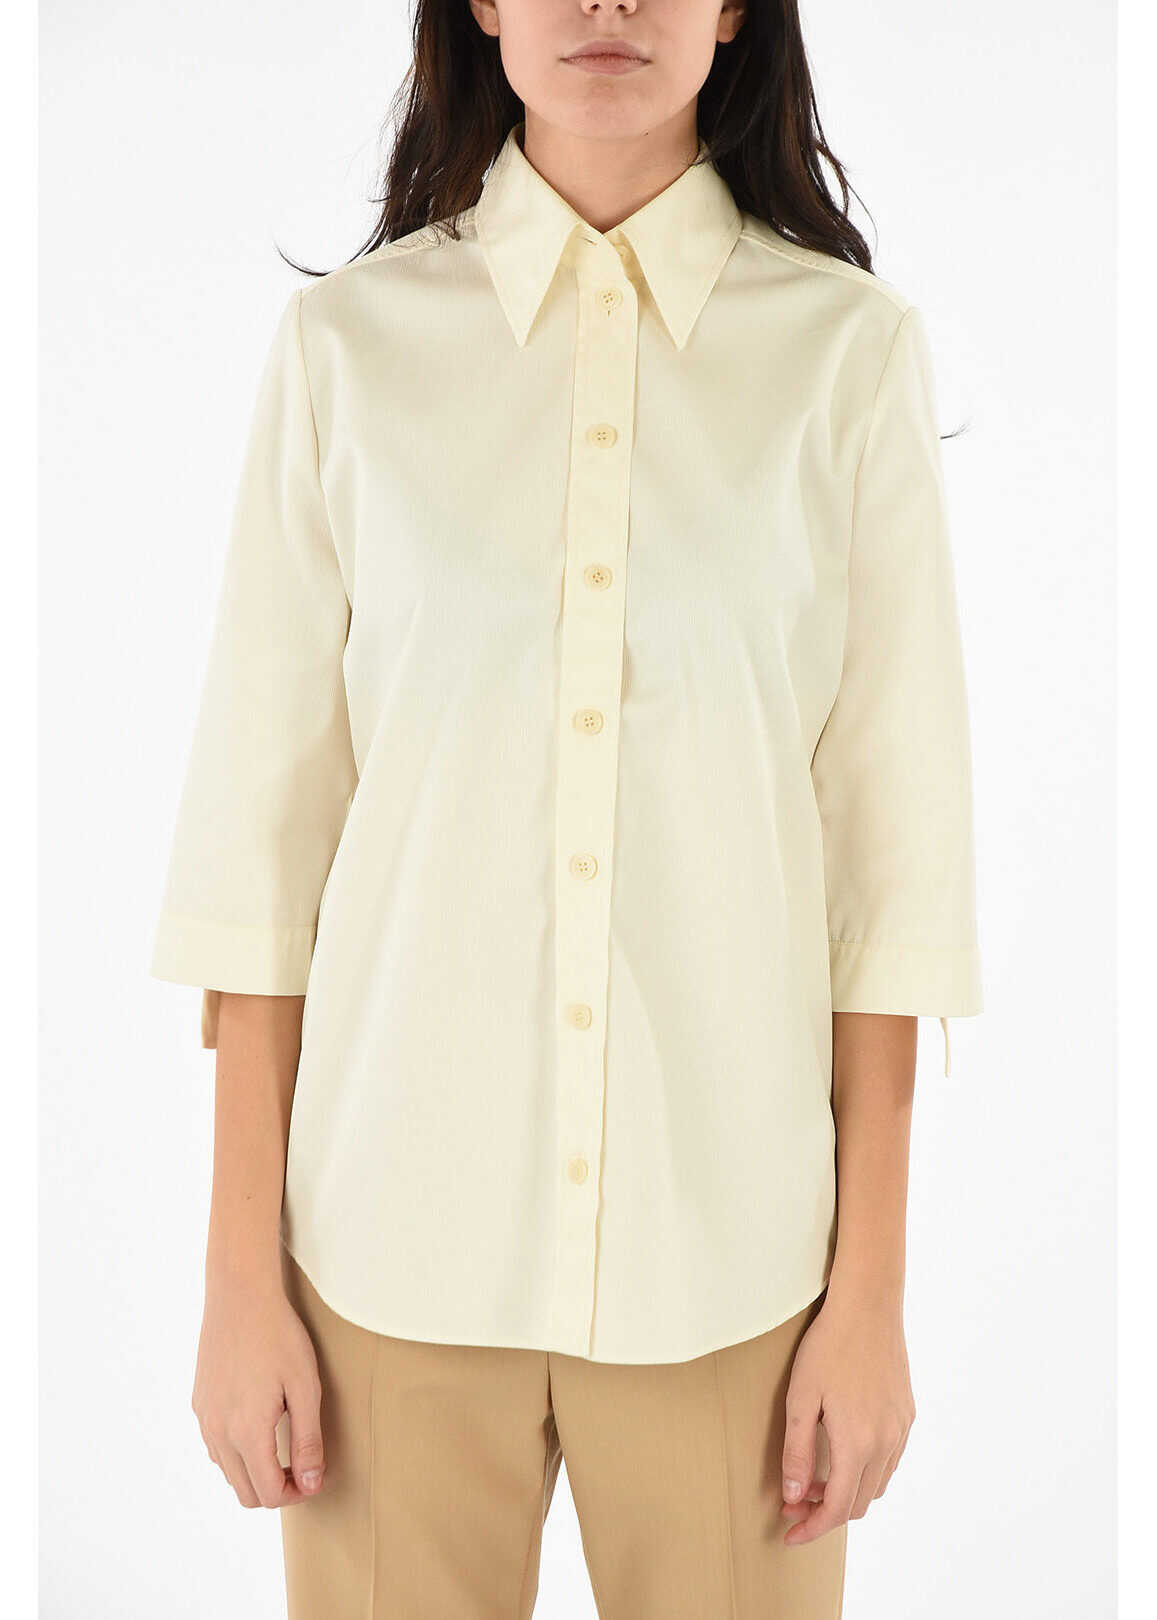 Givenchy Short Sleeve Blouse WHITE